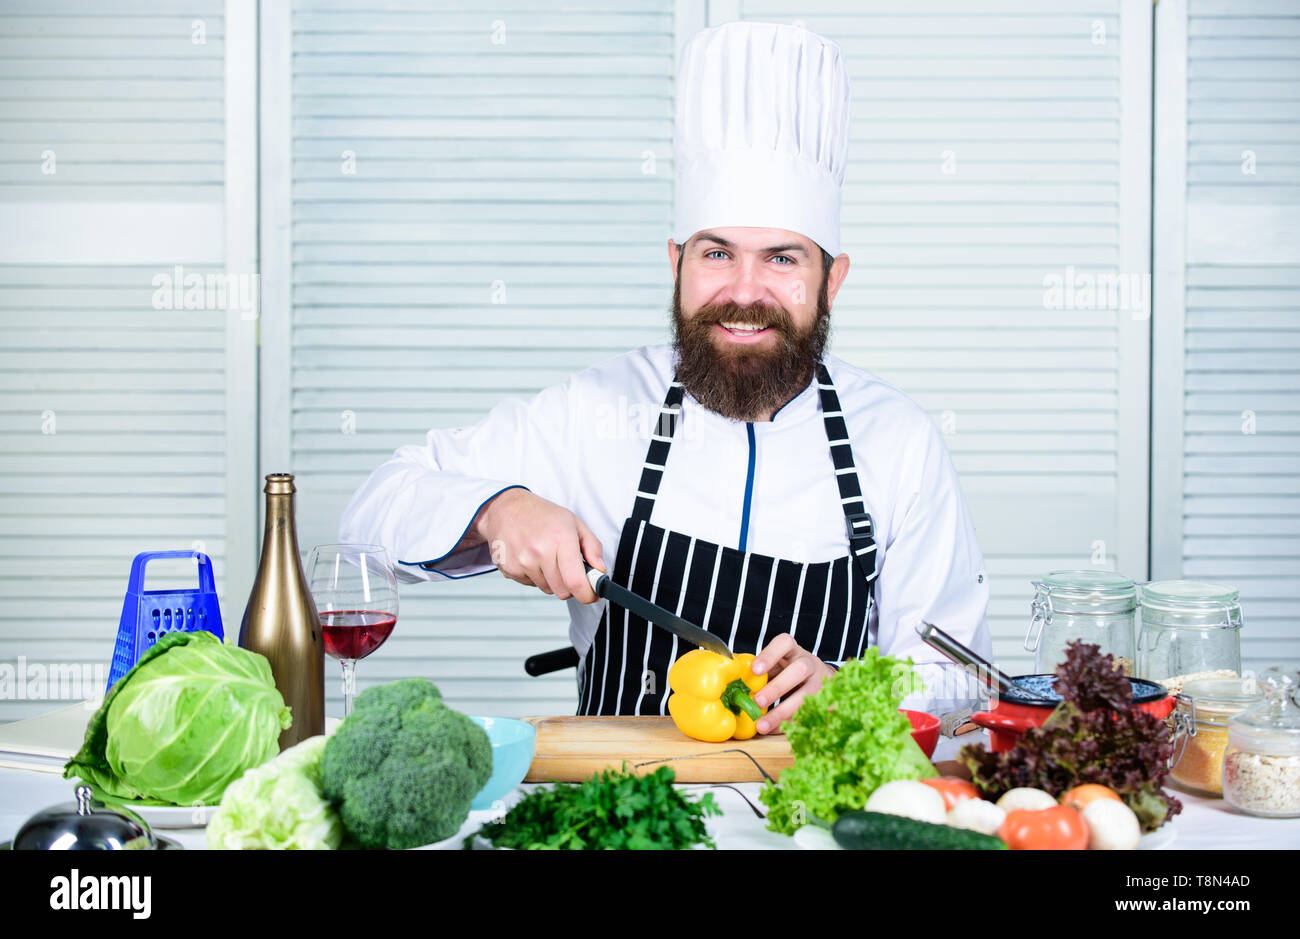 According to recipe. Prepare ingredients for cooking. Useful for significant amount of cooking methods. Basic cooking processes. Man master chef or amateur cooking healthy food. Chop ingredients. - Stock Image